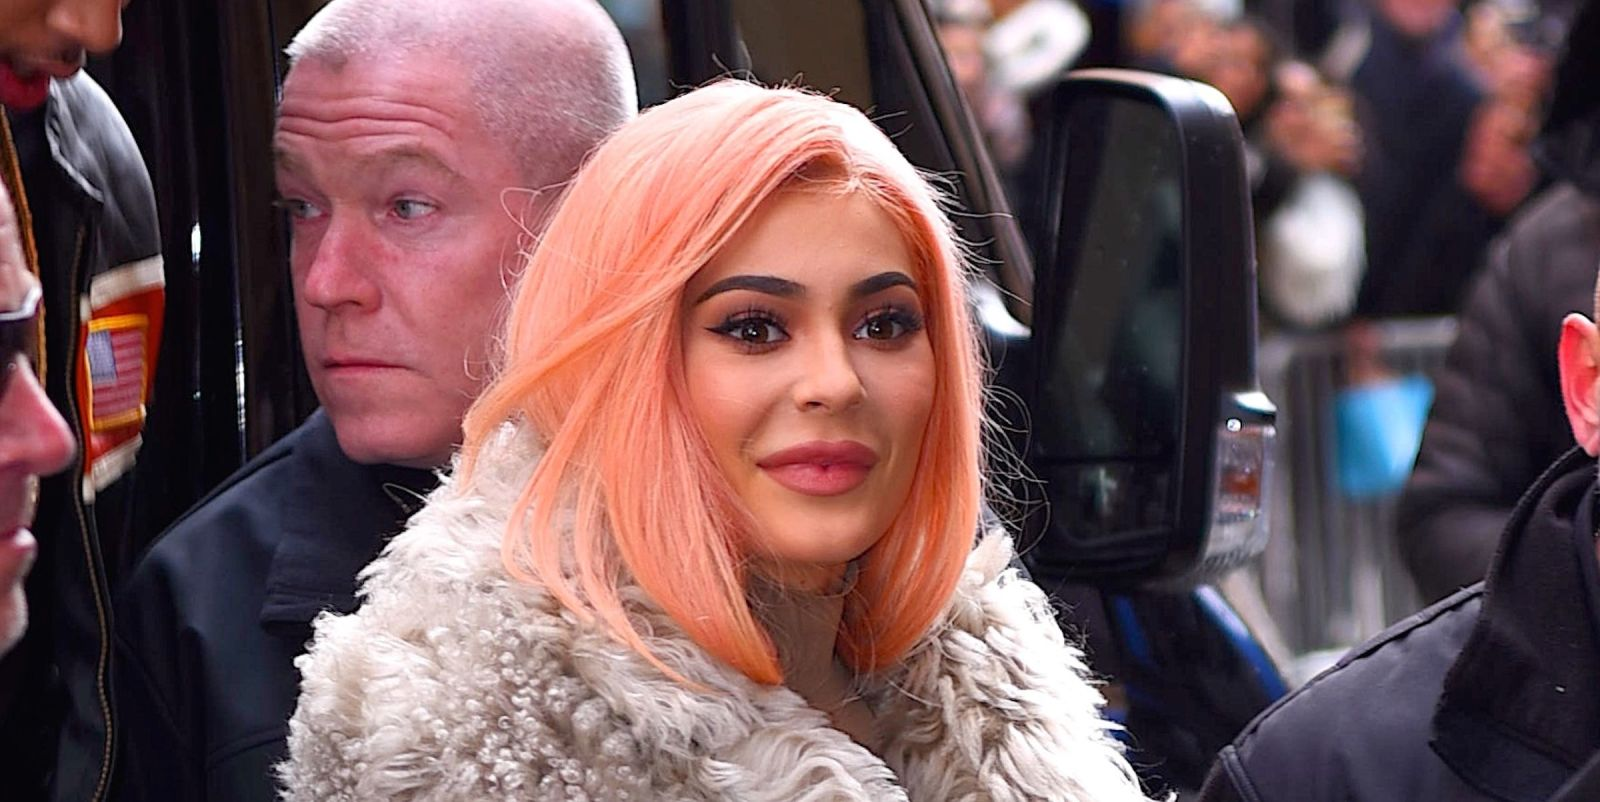 Kylie Jenner goes on prom date after student is rejected